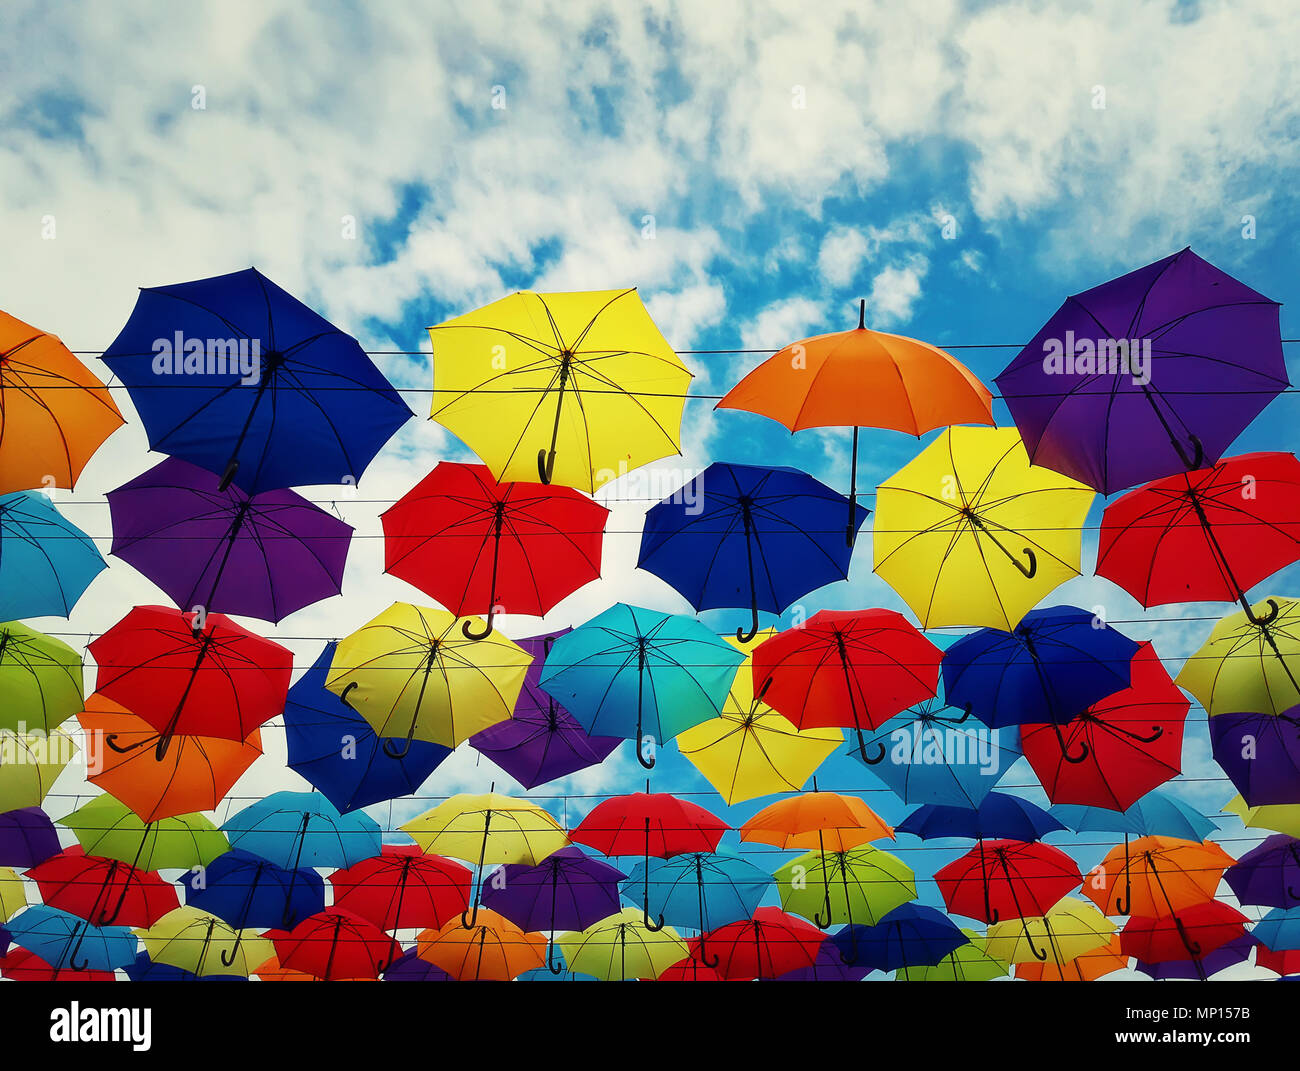 a53dad035 Colorful umbrellas hanging above a city street isolated on blue sky  background. Bright urban decoration.